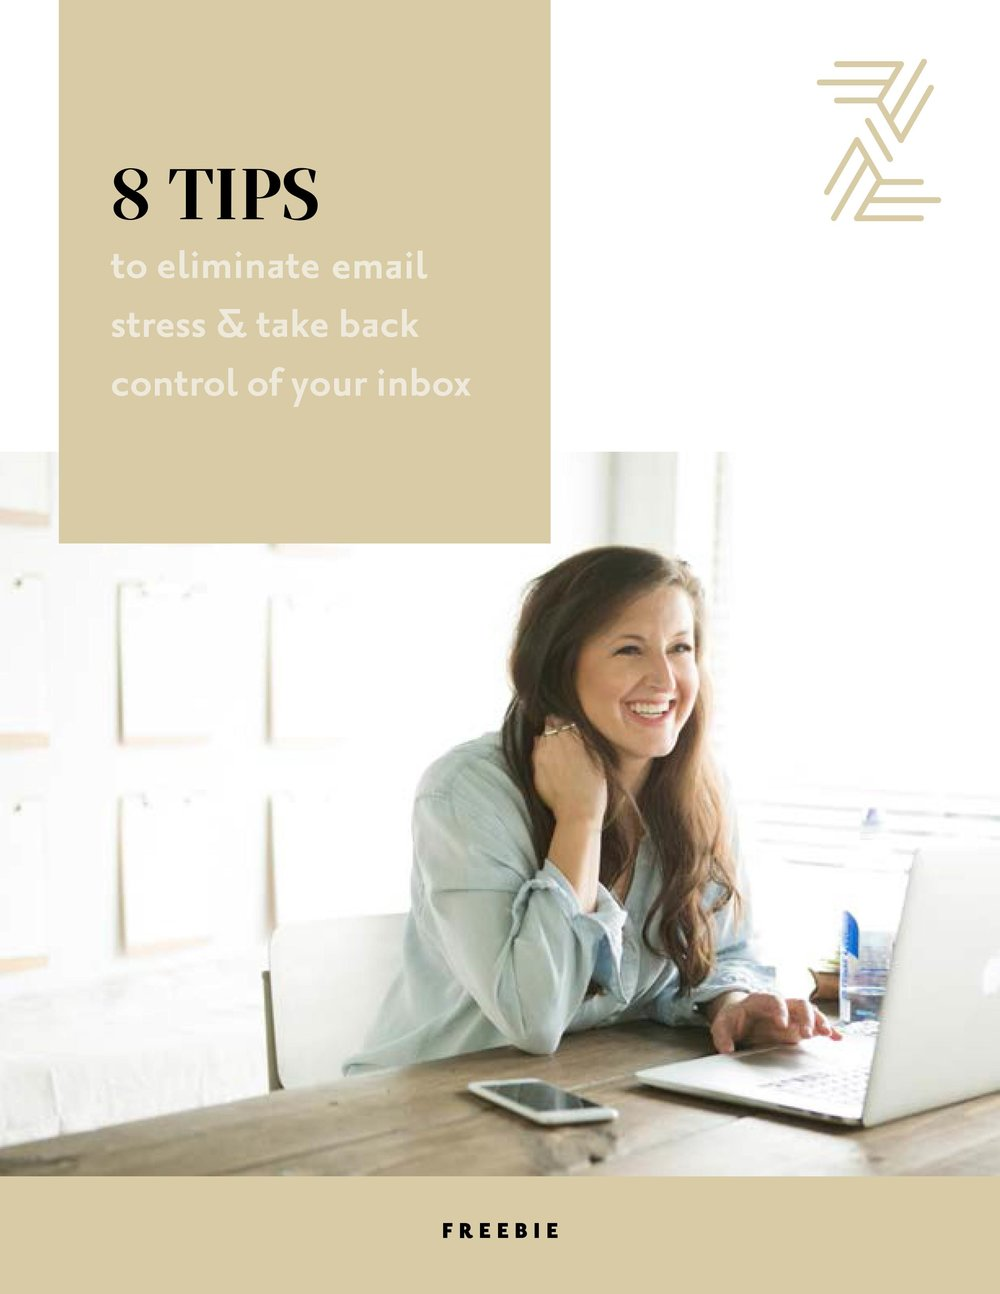 jessica-zimmerman-events-freebie-download-email-stress